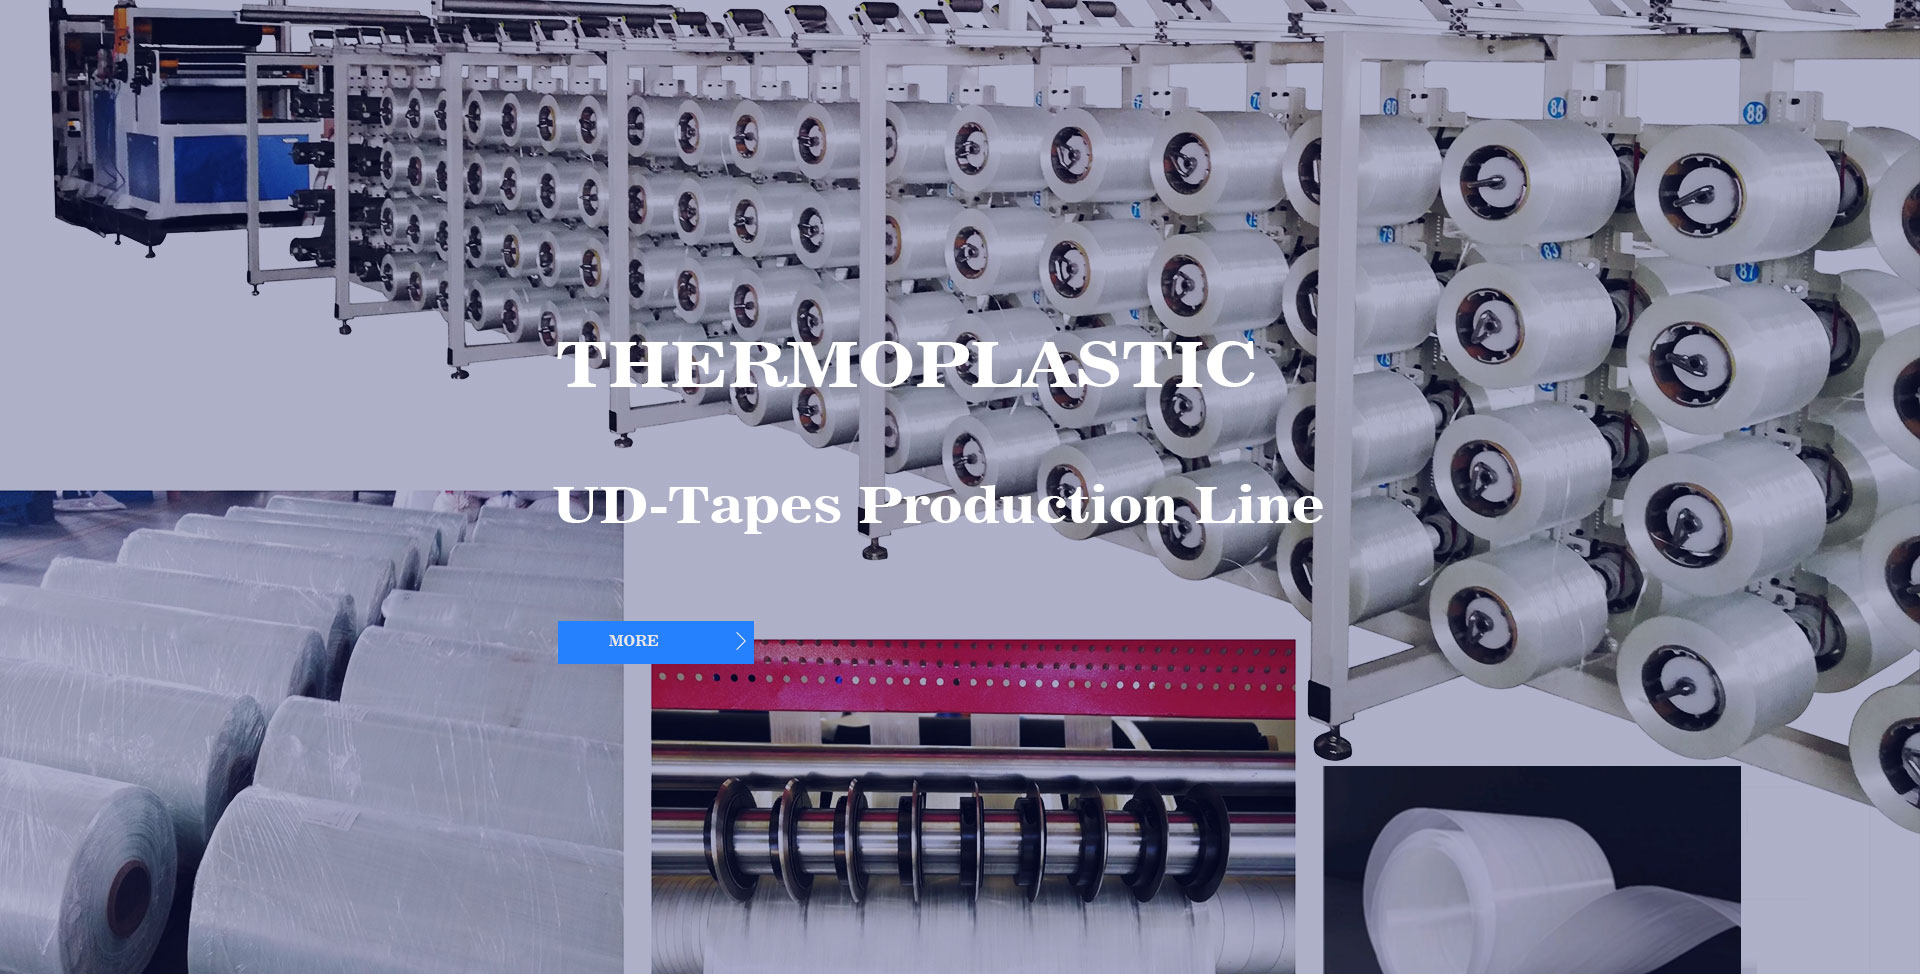 Thermoplastic  UD-Tapes Production Line